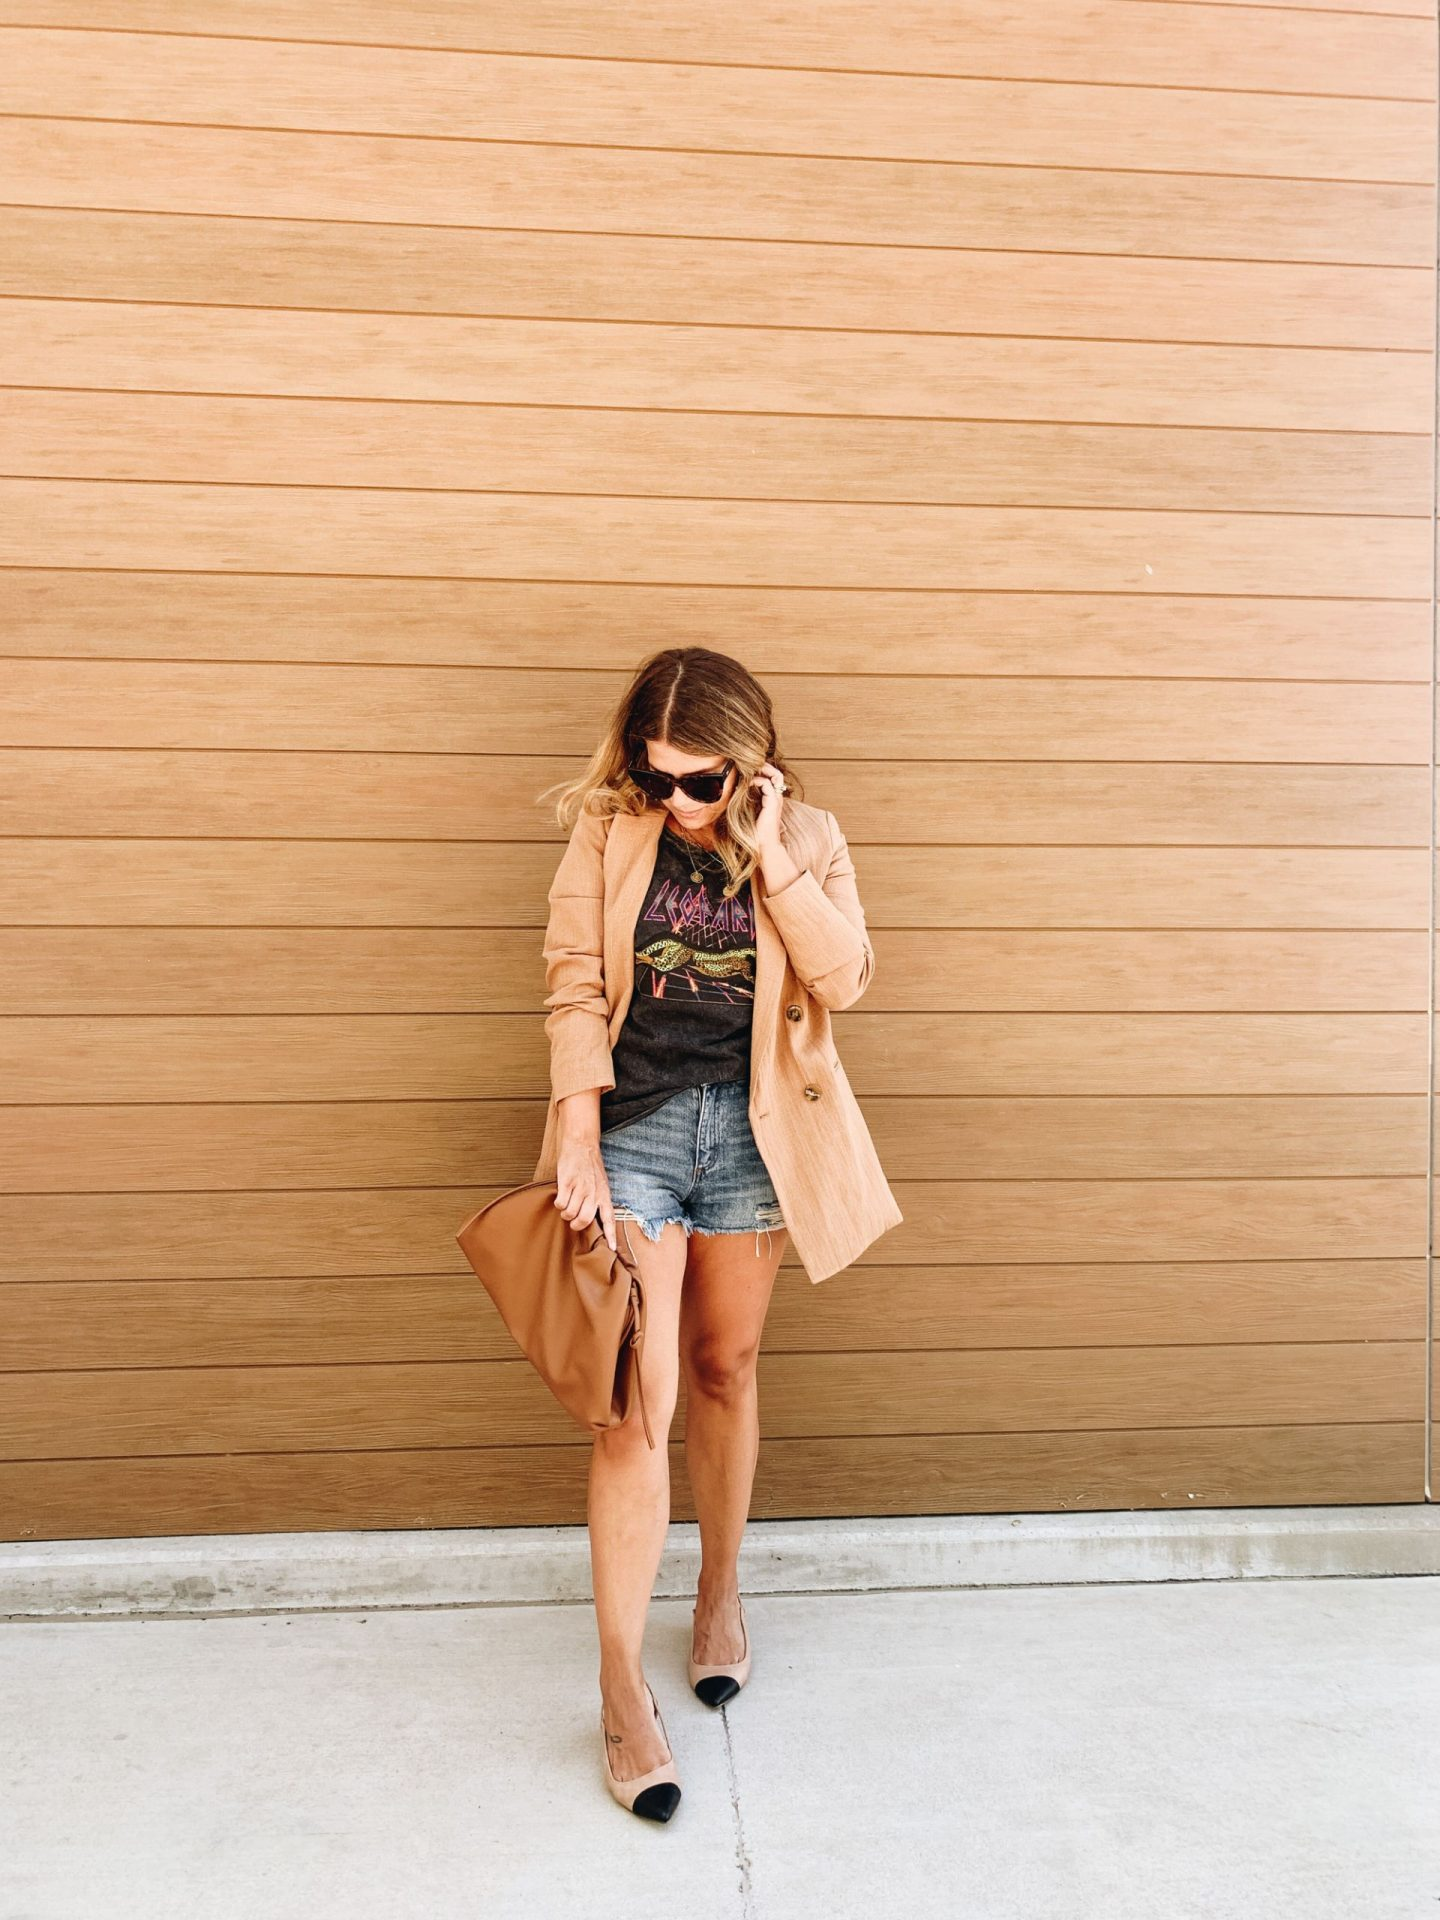 Blazer style, graphic tee, how to style a graphic tee, Denim Shorts, Blazer, Cap Toe Shoe